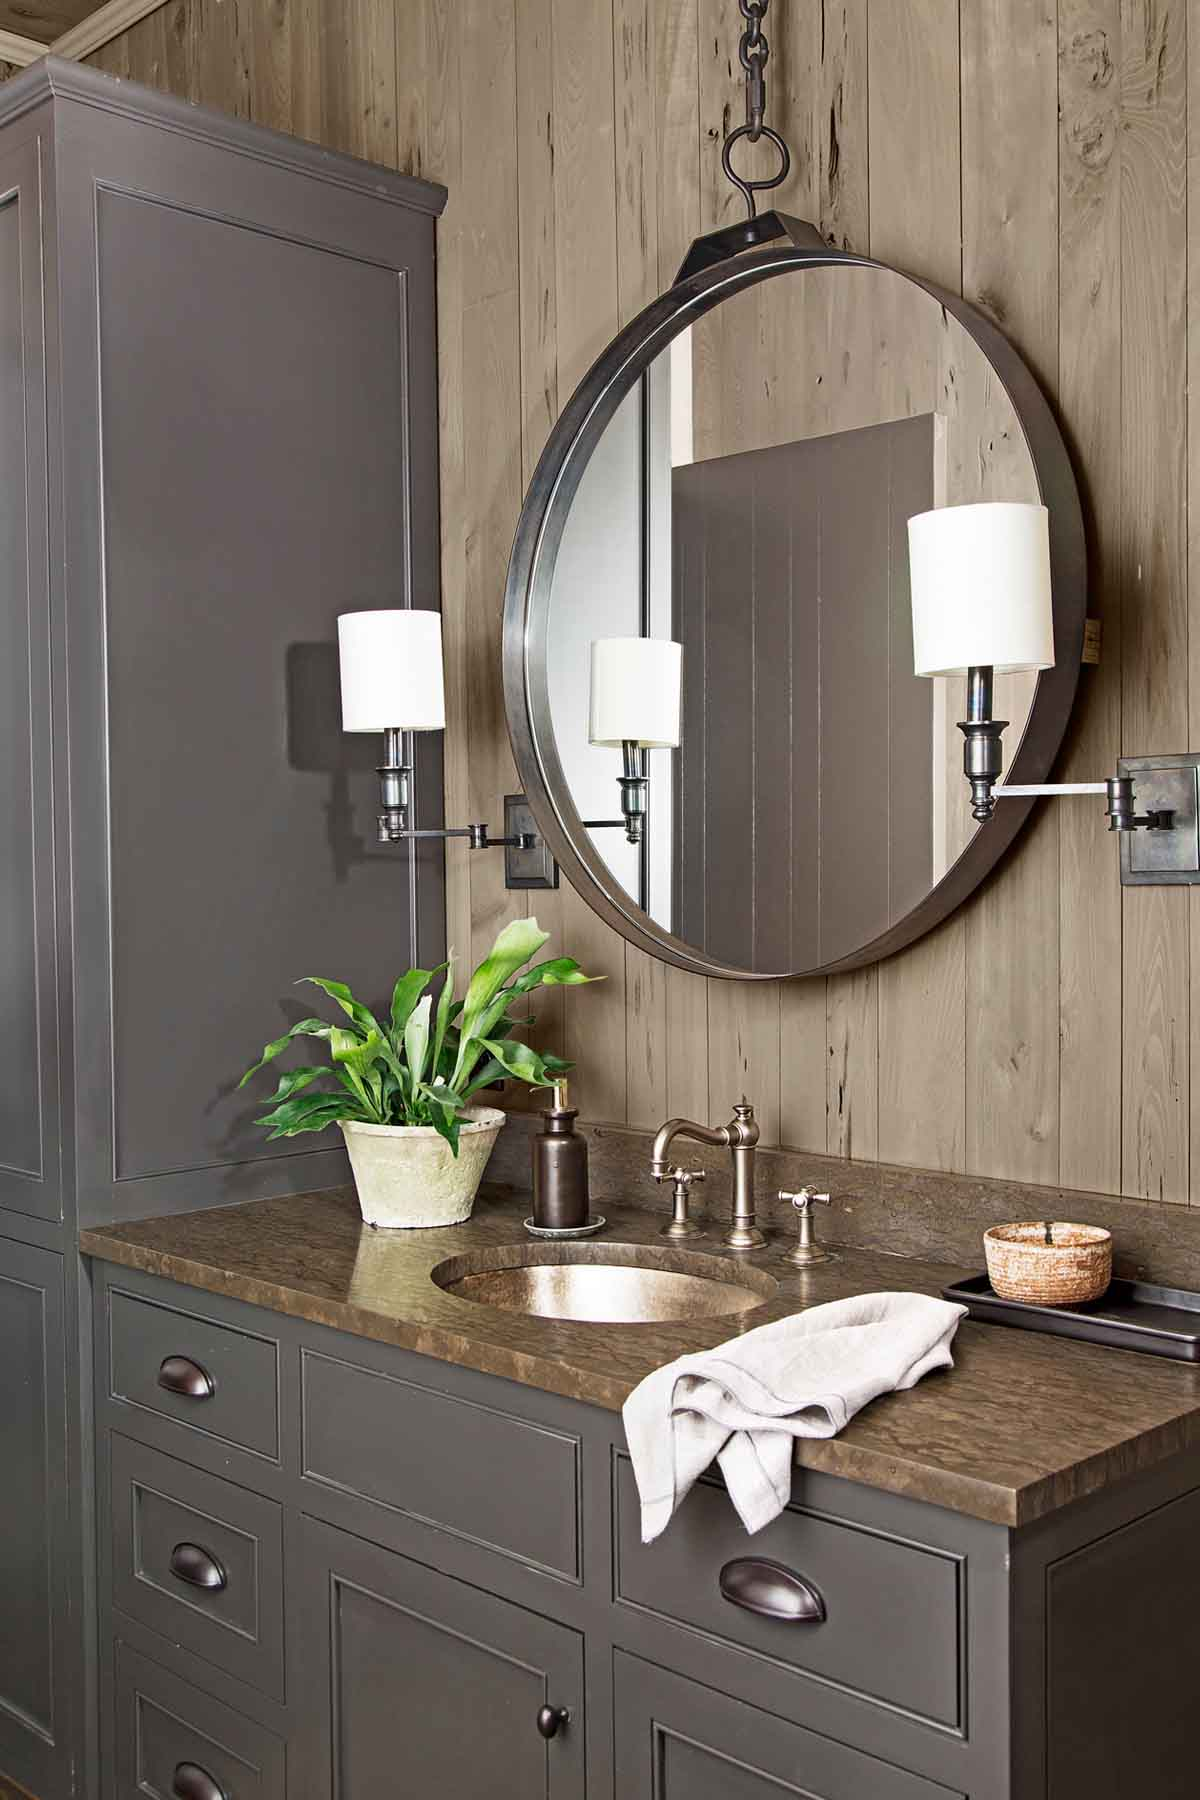 Rustic Bathroom Tile 37 rustic bathroom decor ideas - rustic modern bathroom designs